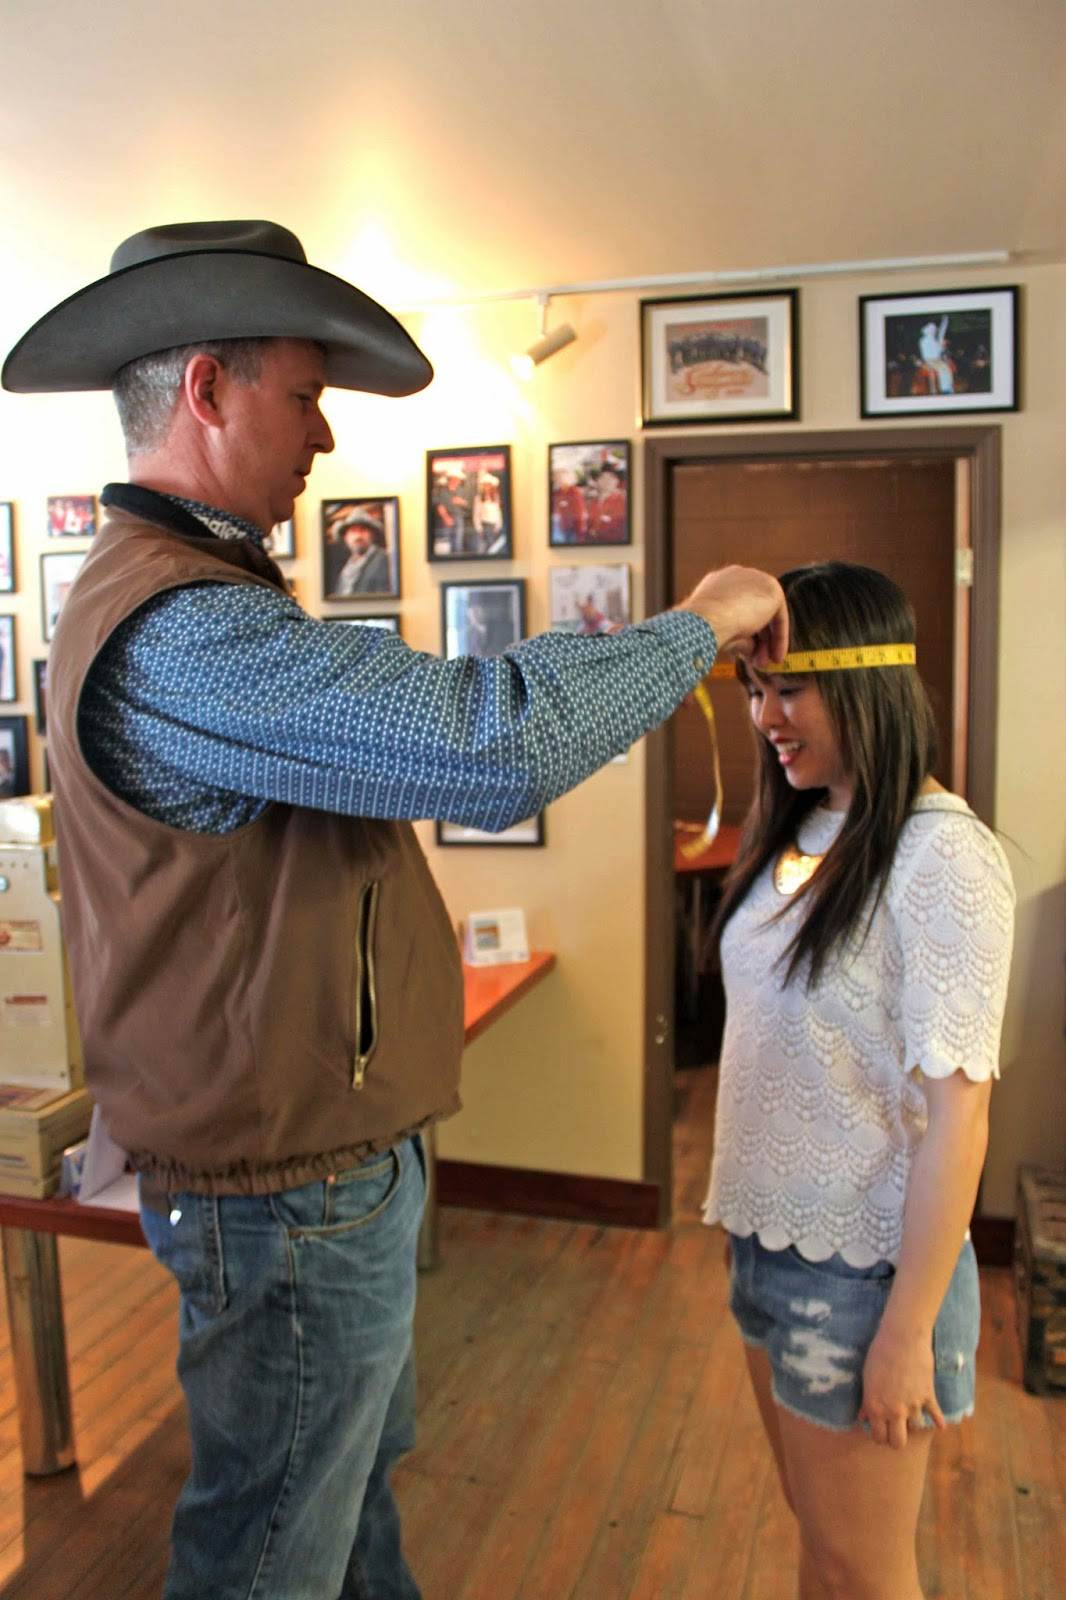 Getting my head measured for a perfectly fit cowboy hat from Smithbilt Hats  in Calgary (above). Going to be in town for Stampede  859c2e7c296